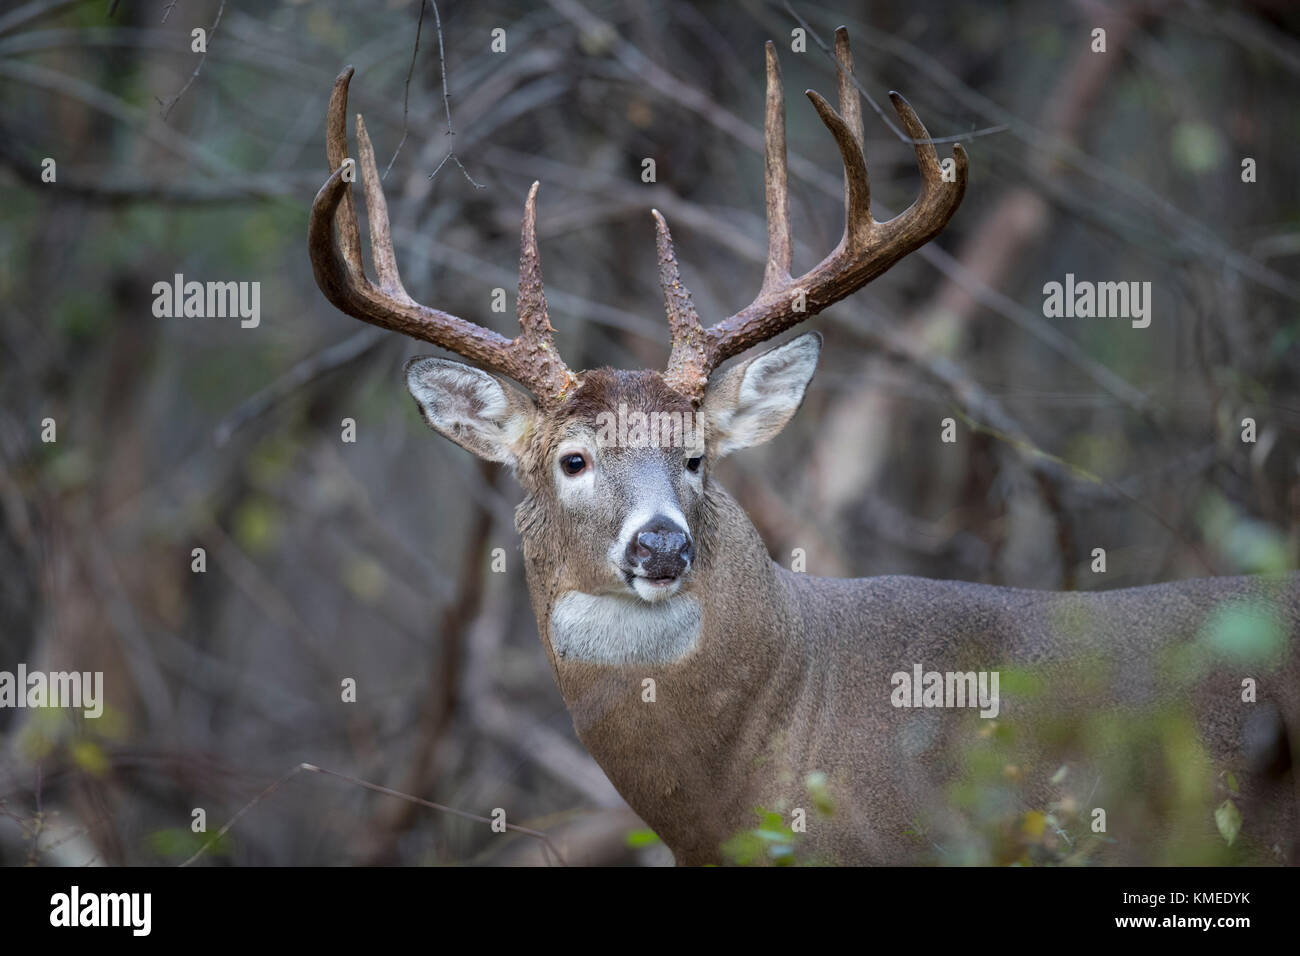 A very large, mature buck whitetail deer looking alert. - Stock Image